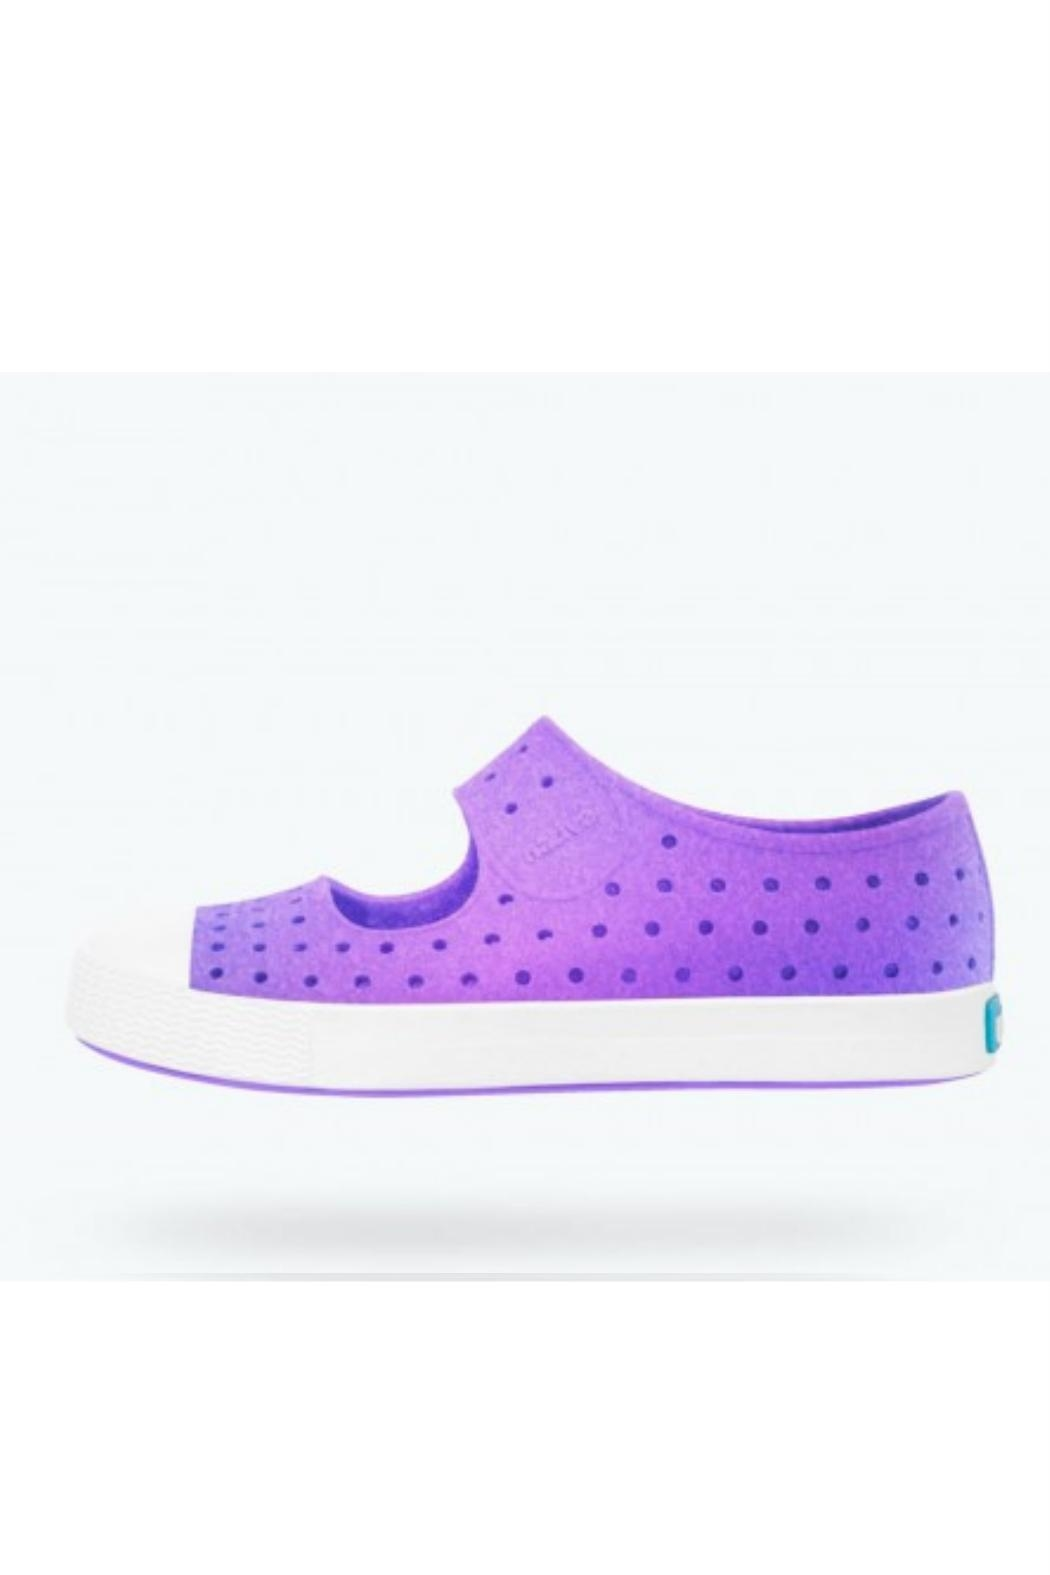 Native Shoes Juniper Iridescent Slip On - Front Cropped Image